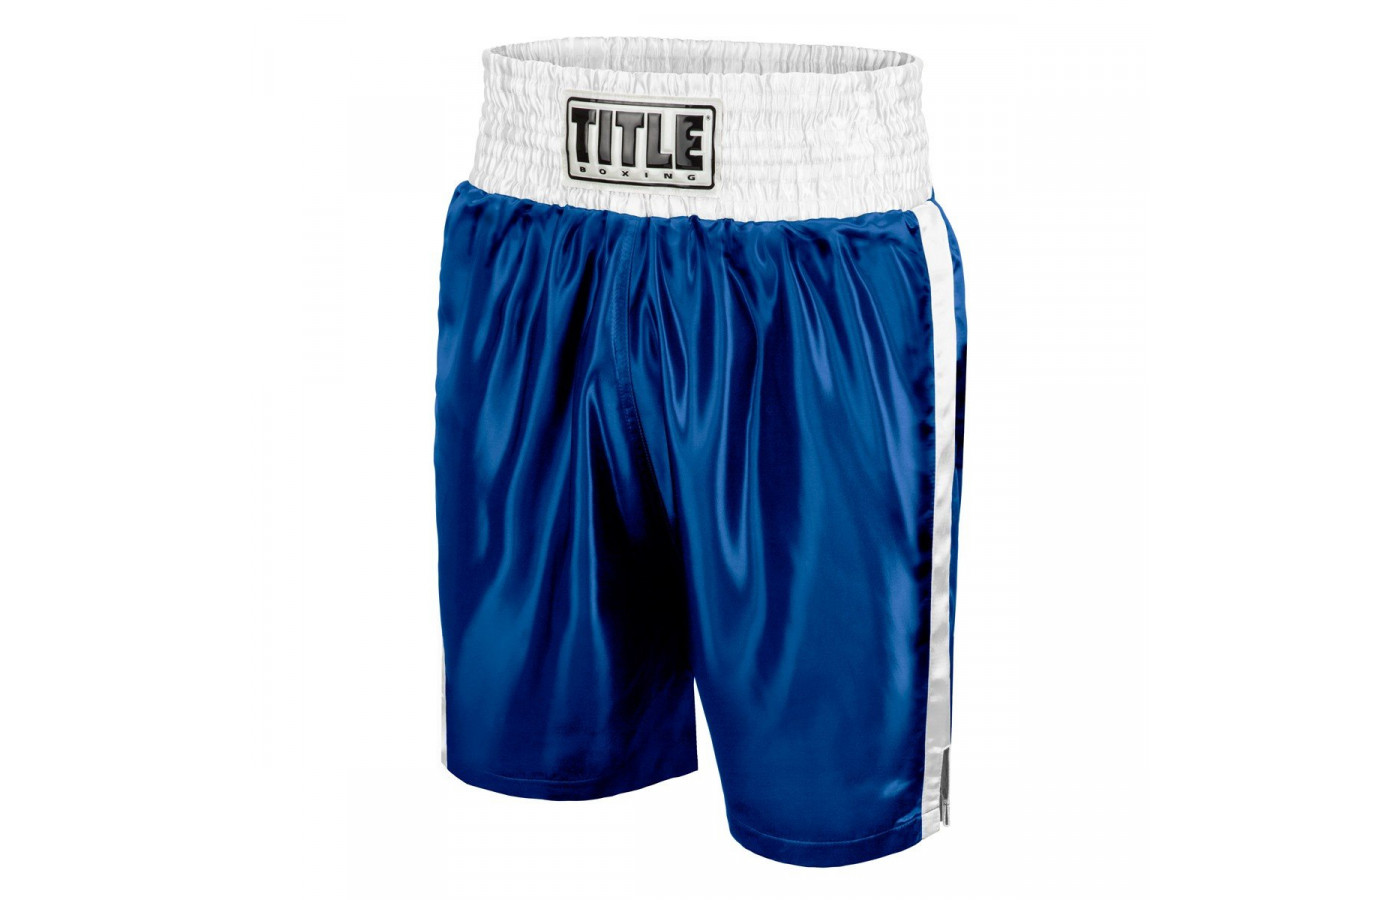 Title trunks blue and white